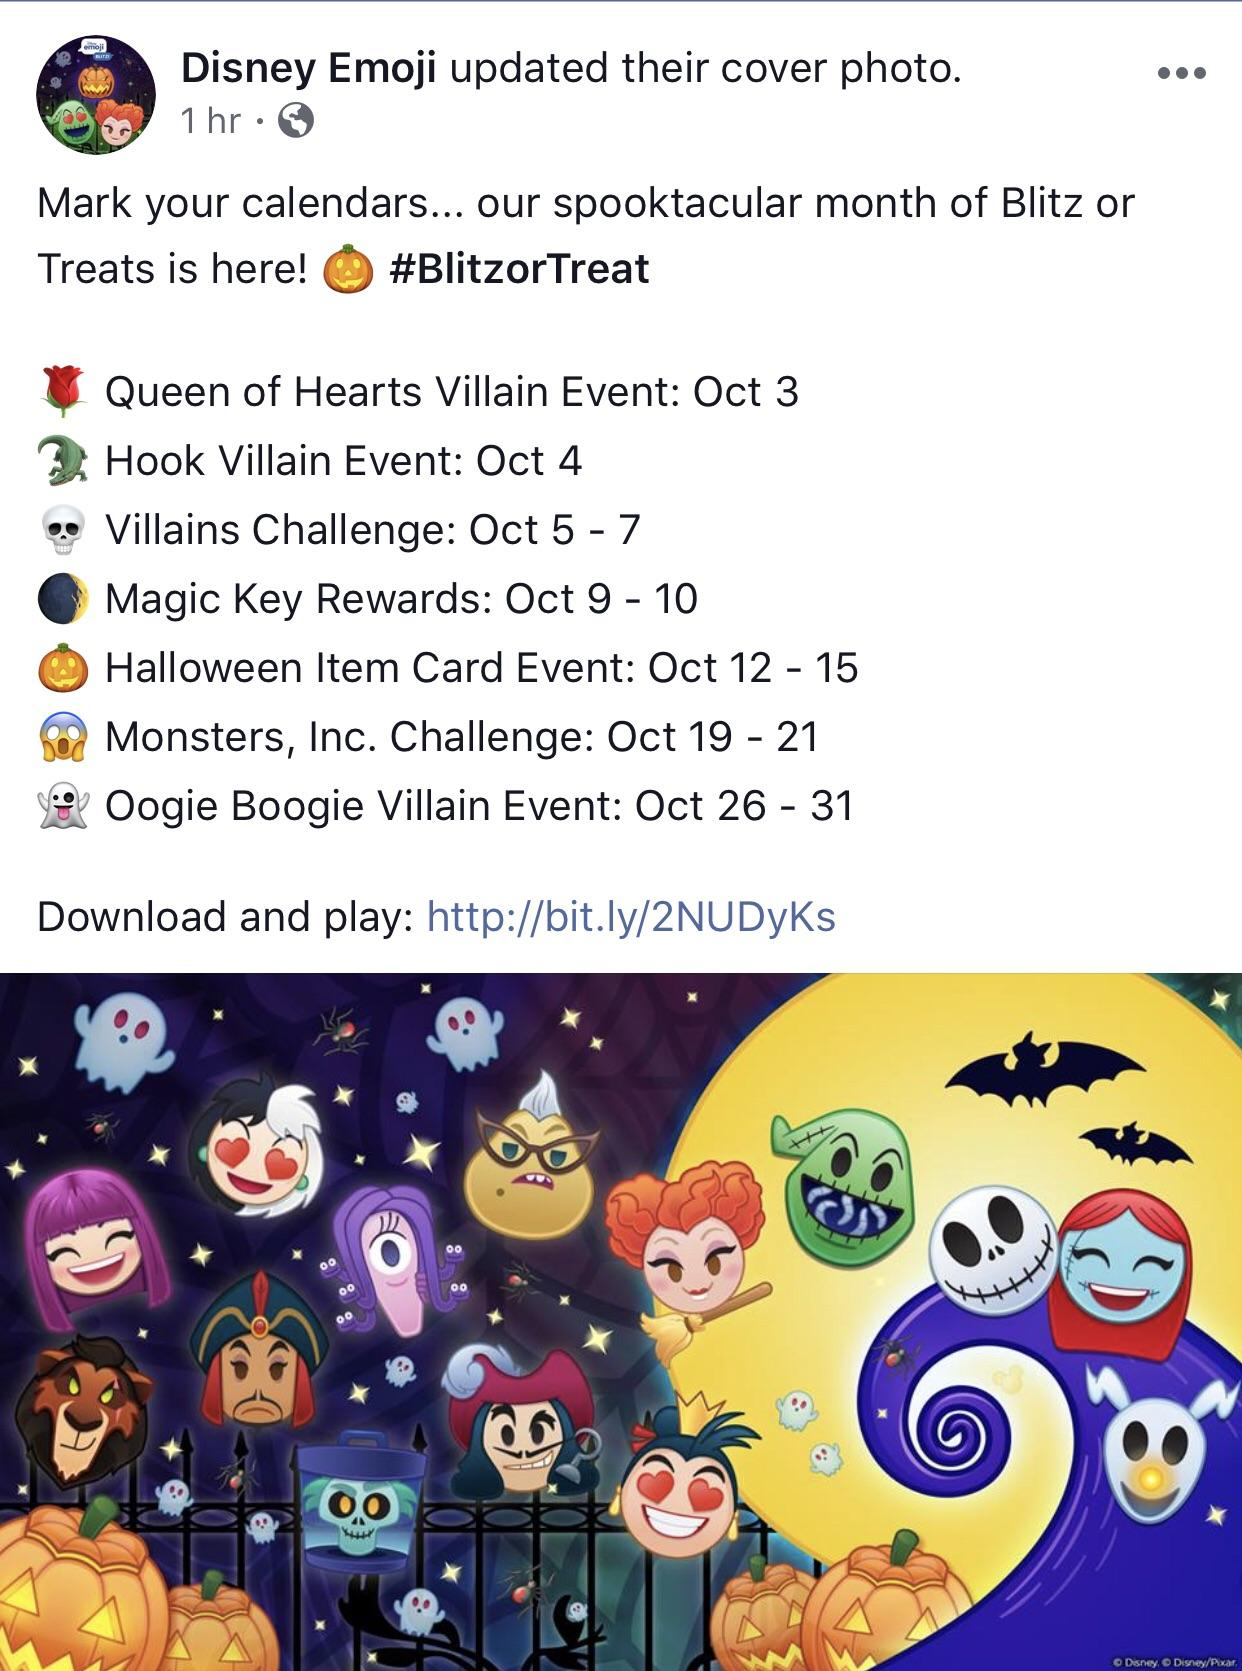 So Glad They're Giving Us The Rundown Every Month with regard to Emoji Blitz Event Calendar